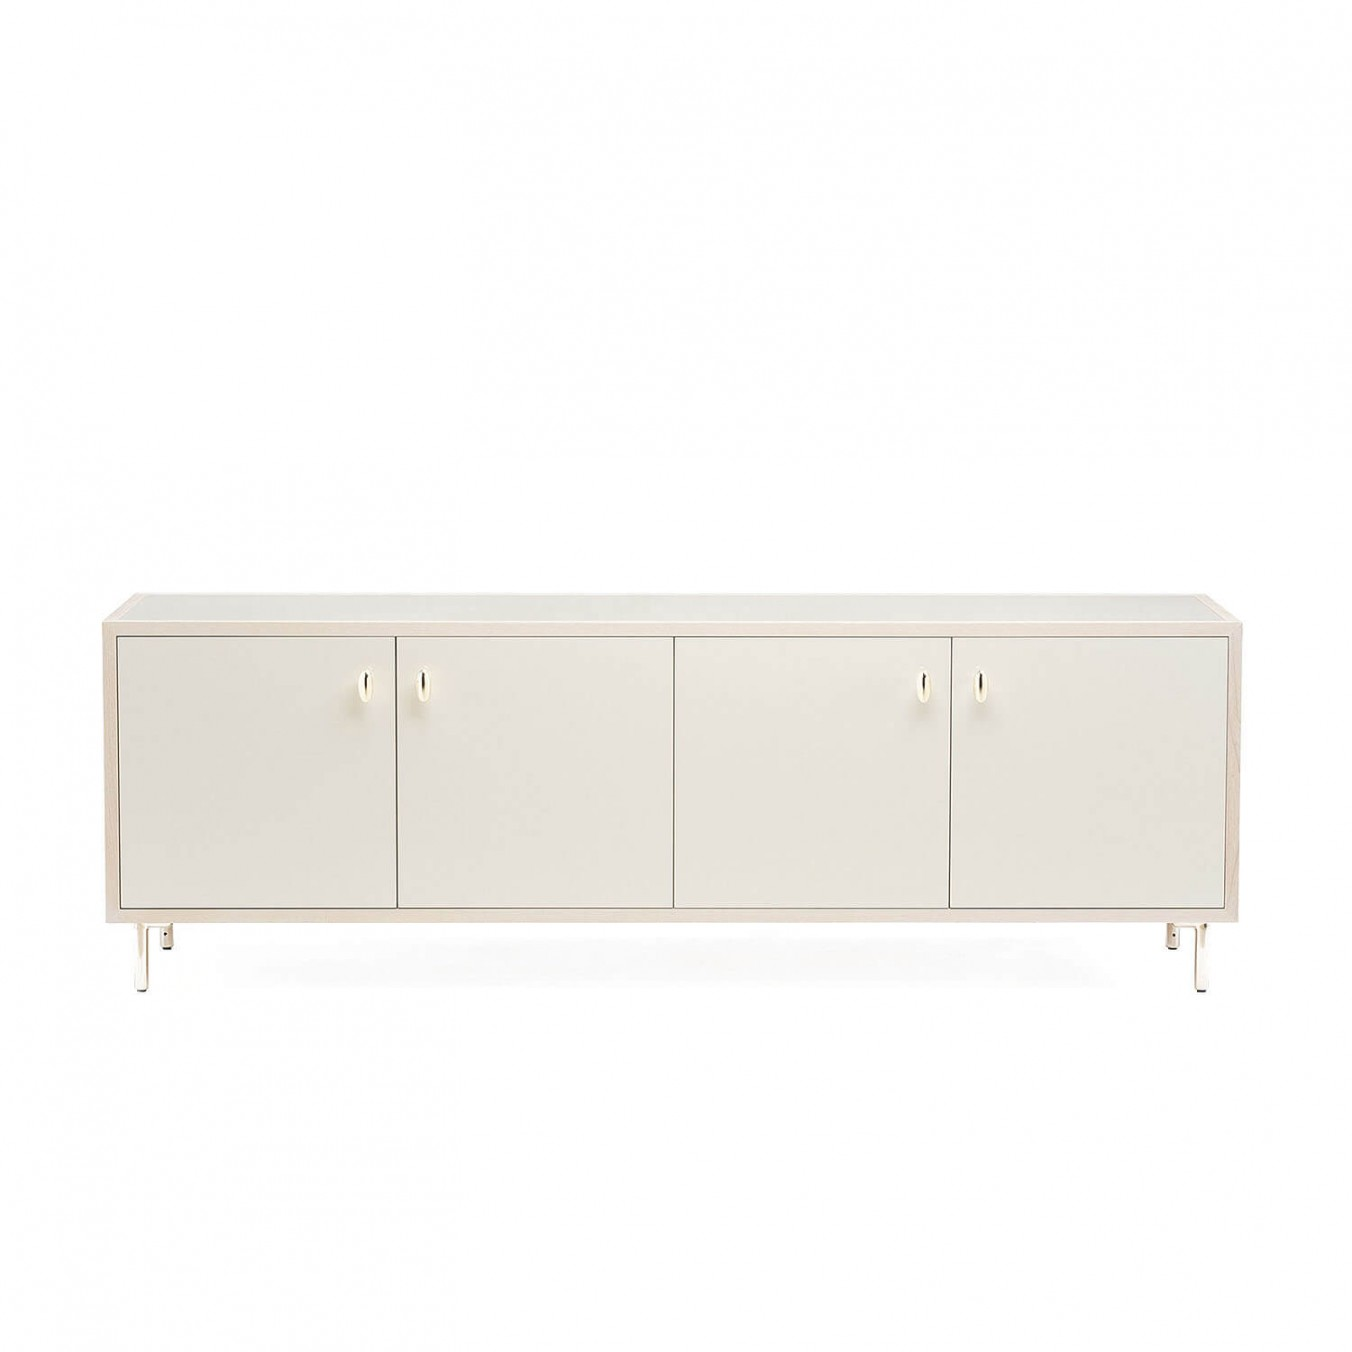 CLASSON SIDEBOARD